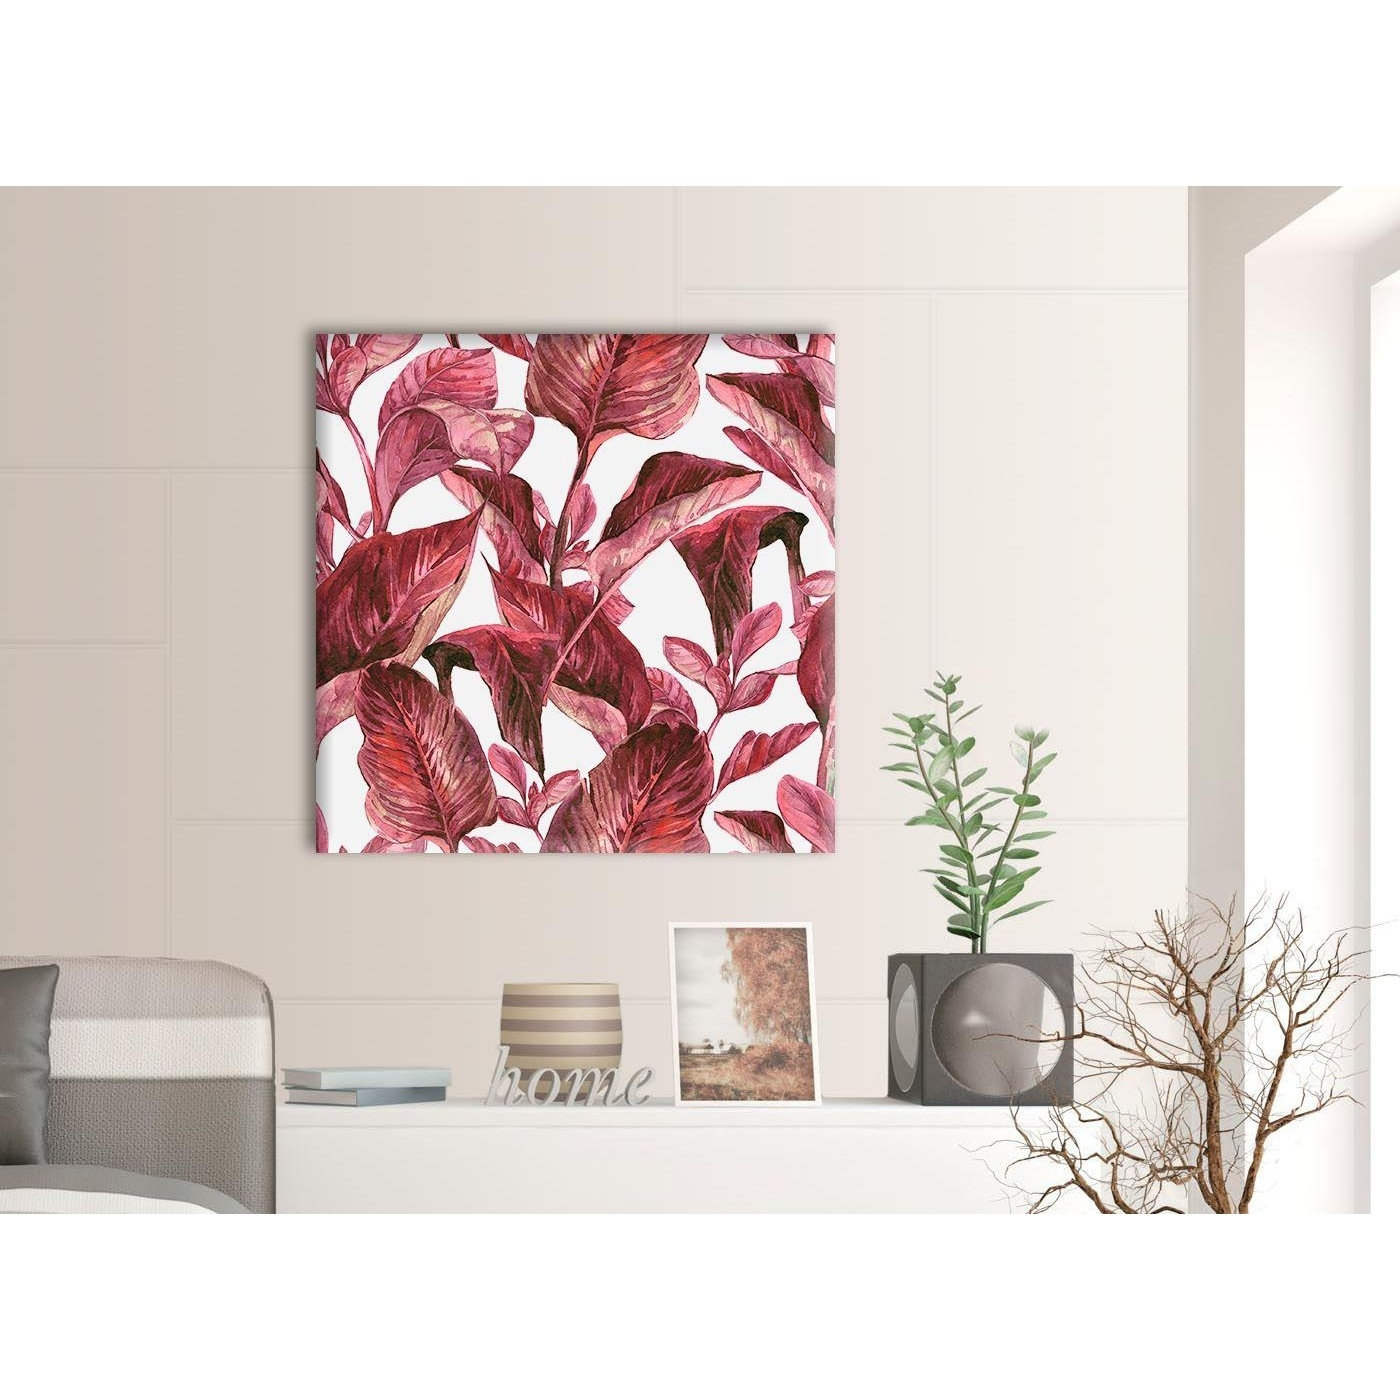 Dark Burgundy Red White Tropical Leaves Canvas Wall Art – Modern For Burgundy Wall Art (View 9 of 20)